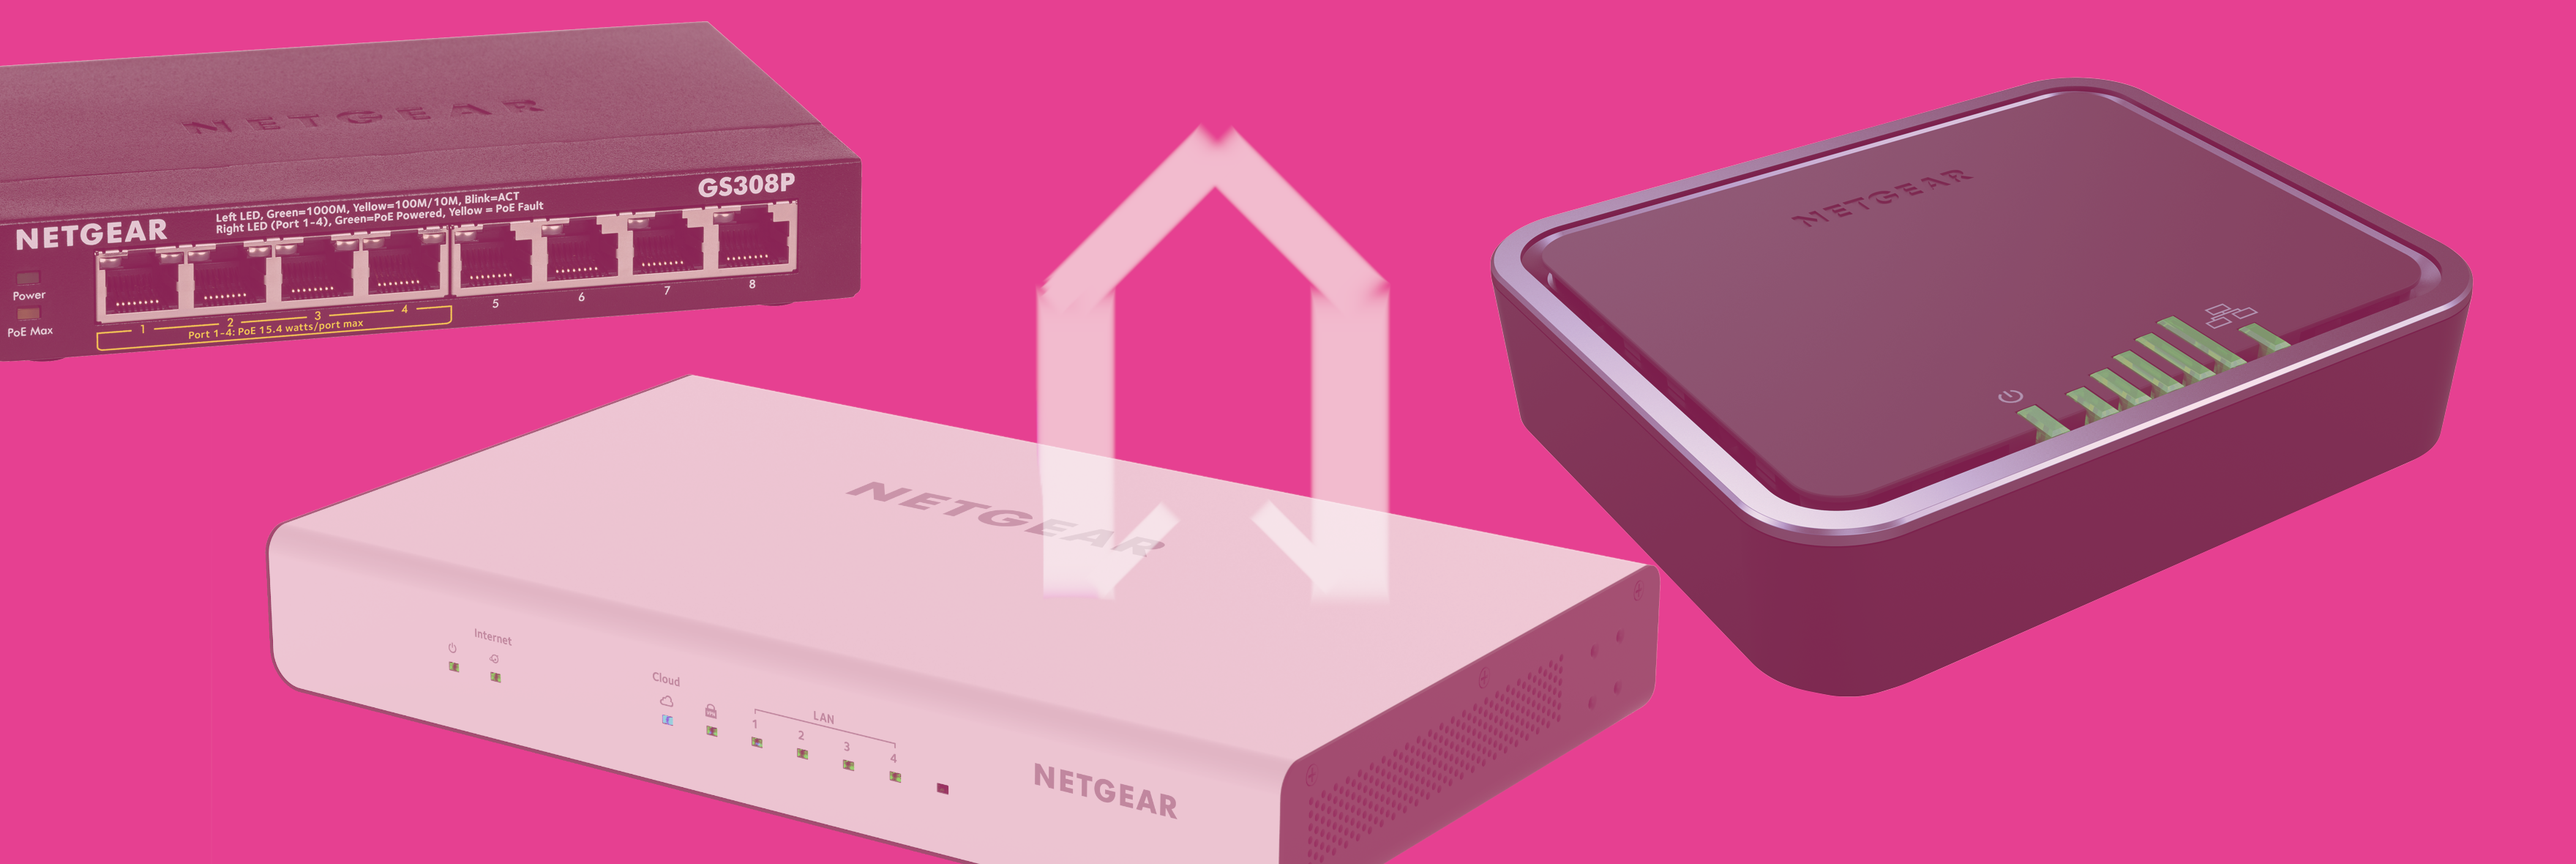 Netgear - Helping You Work Remotely